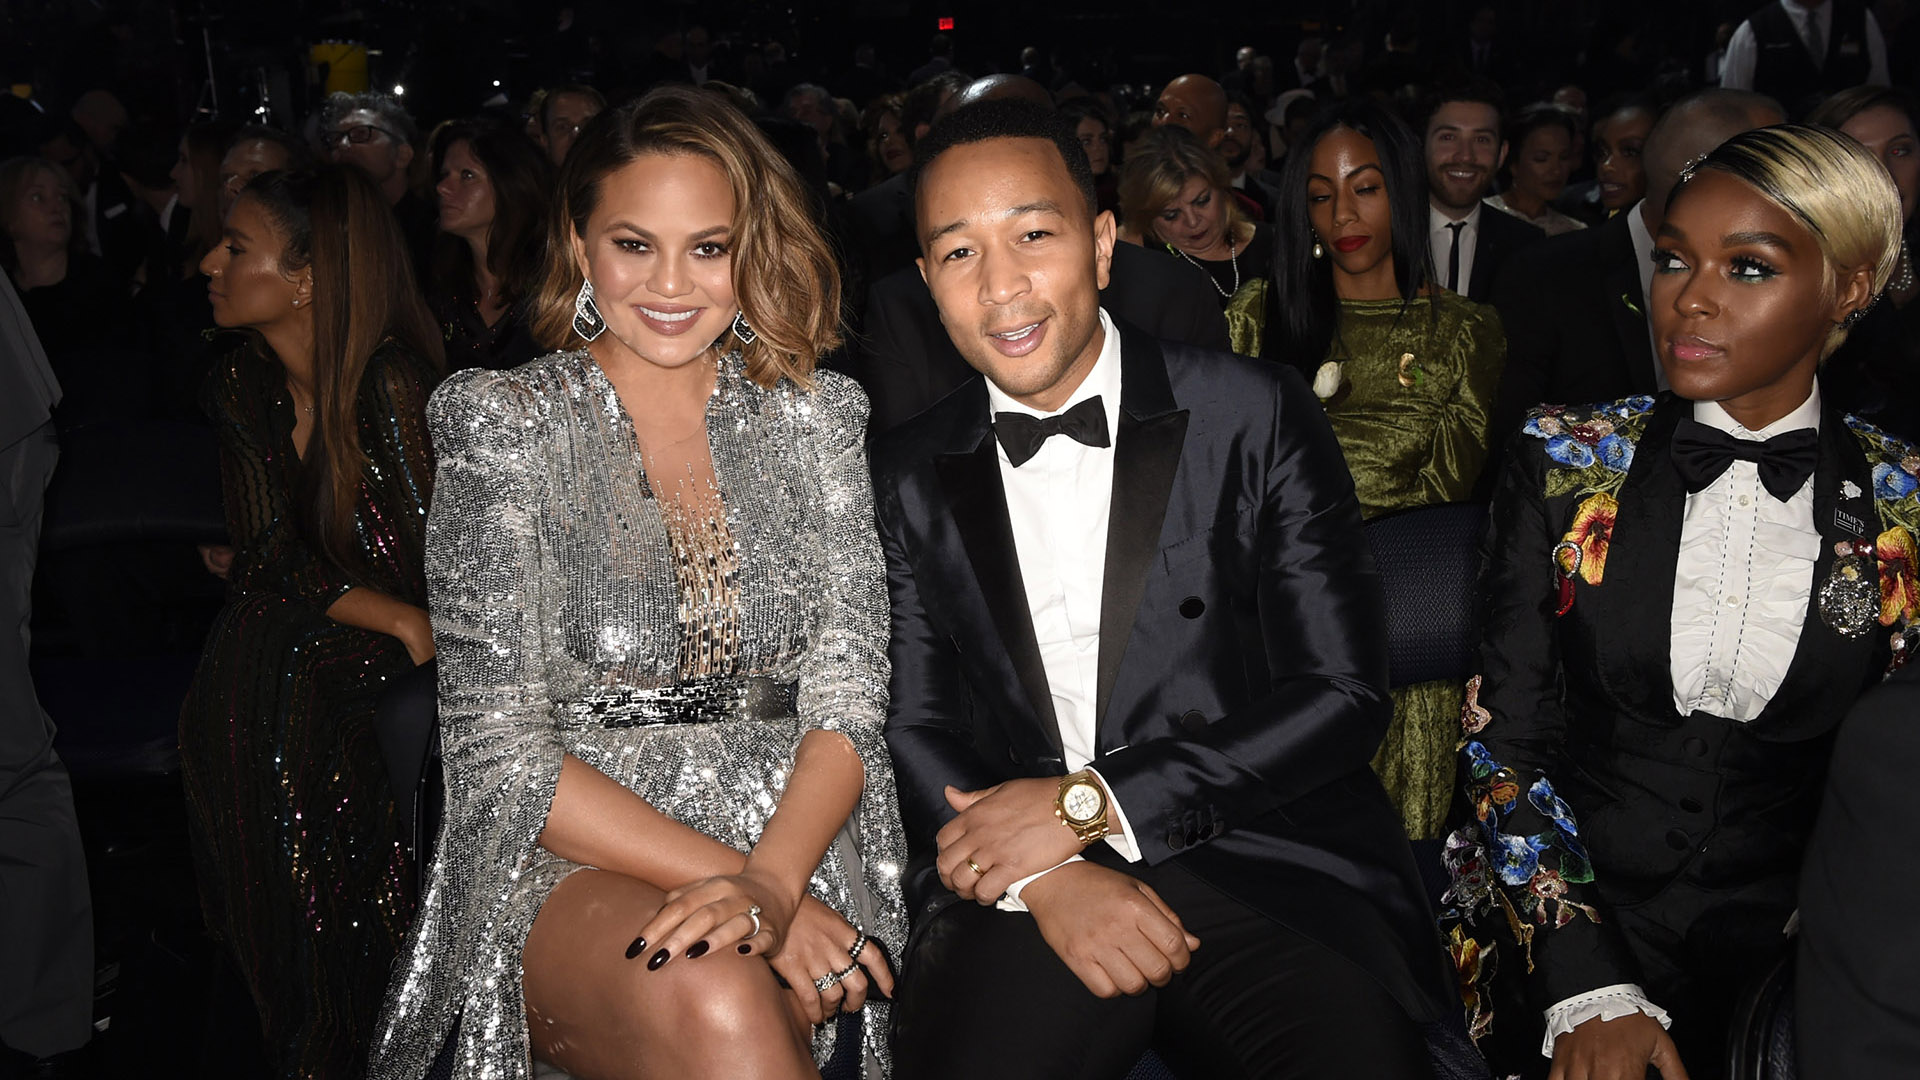 Soul-pop crooner John Legend offers a smile for the camera alongside wife Chrissy Teigen, while Janelle Monáe looks on.